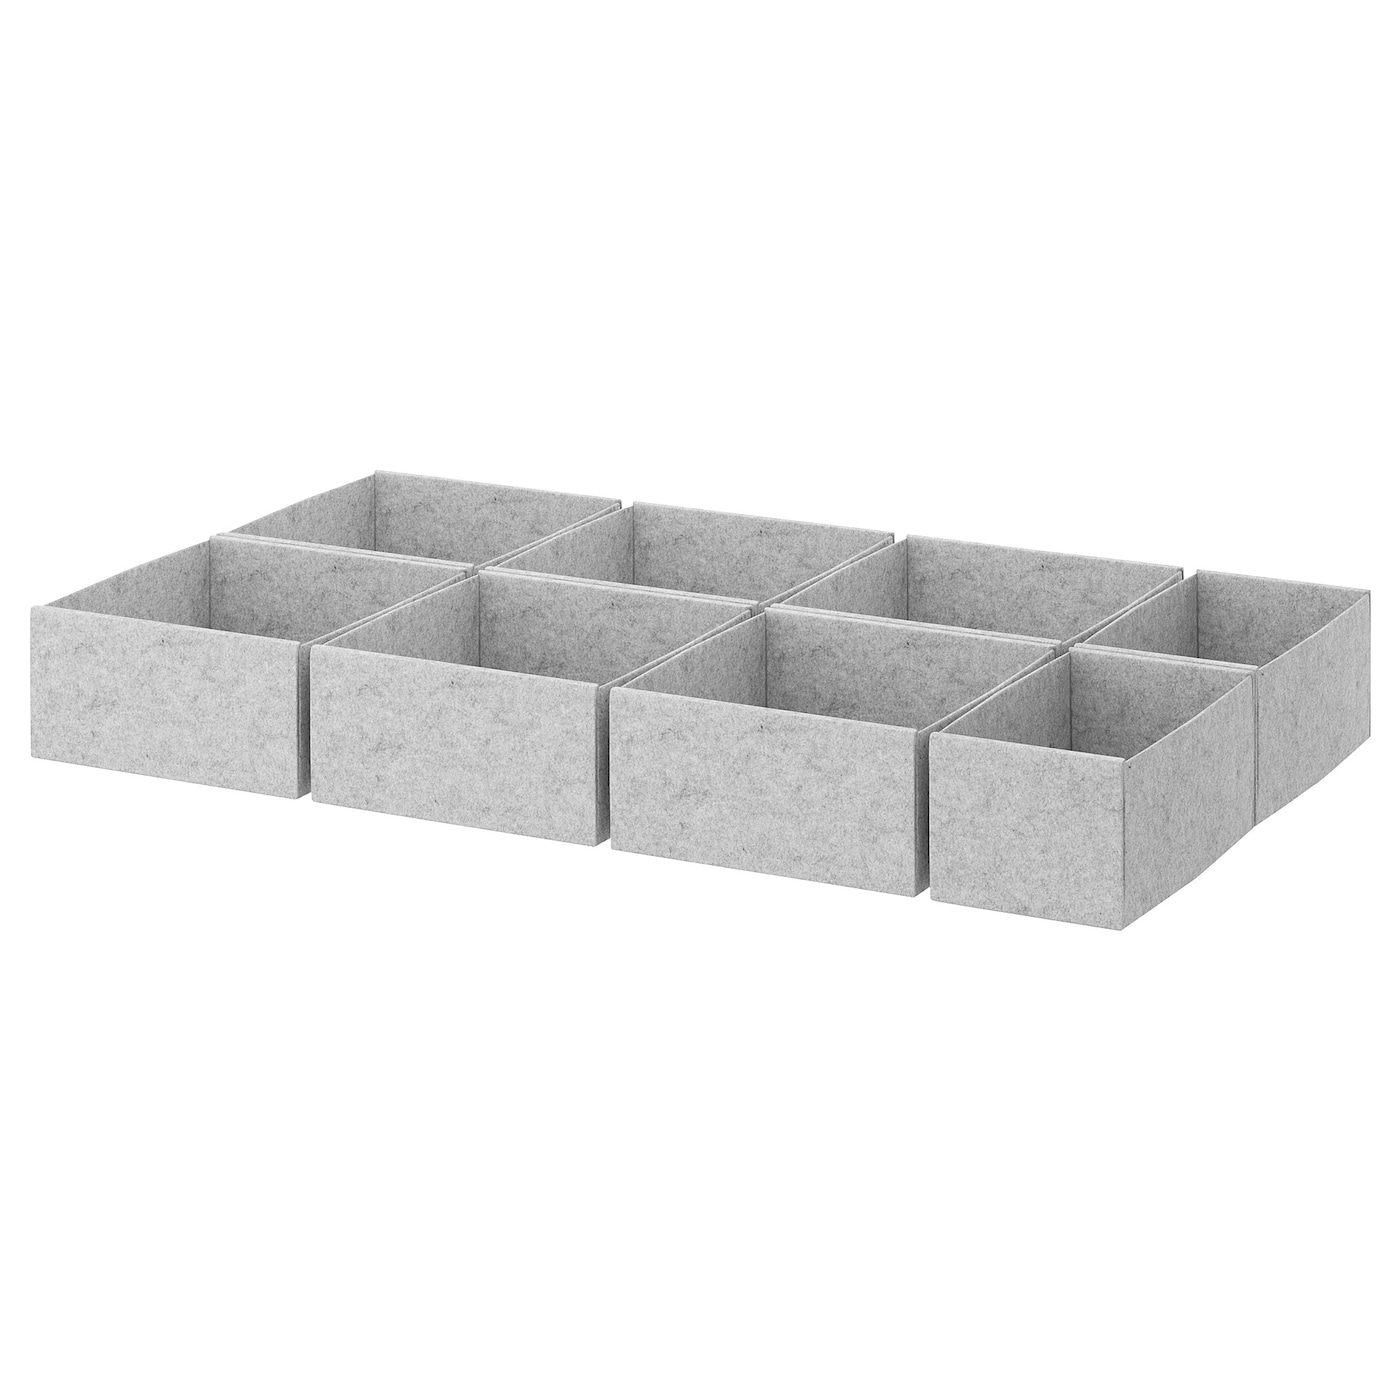 IKEA KOMPLEMENT box, set of 8 Soft felt protects your accessories and keeps them neatly in place.